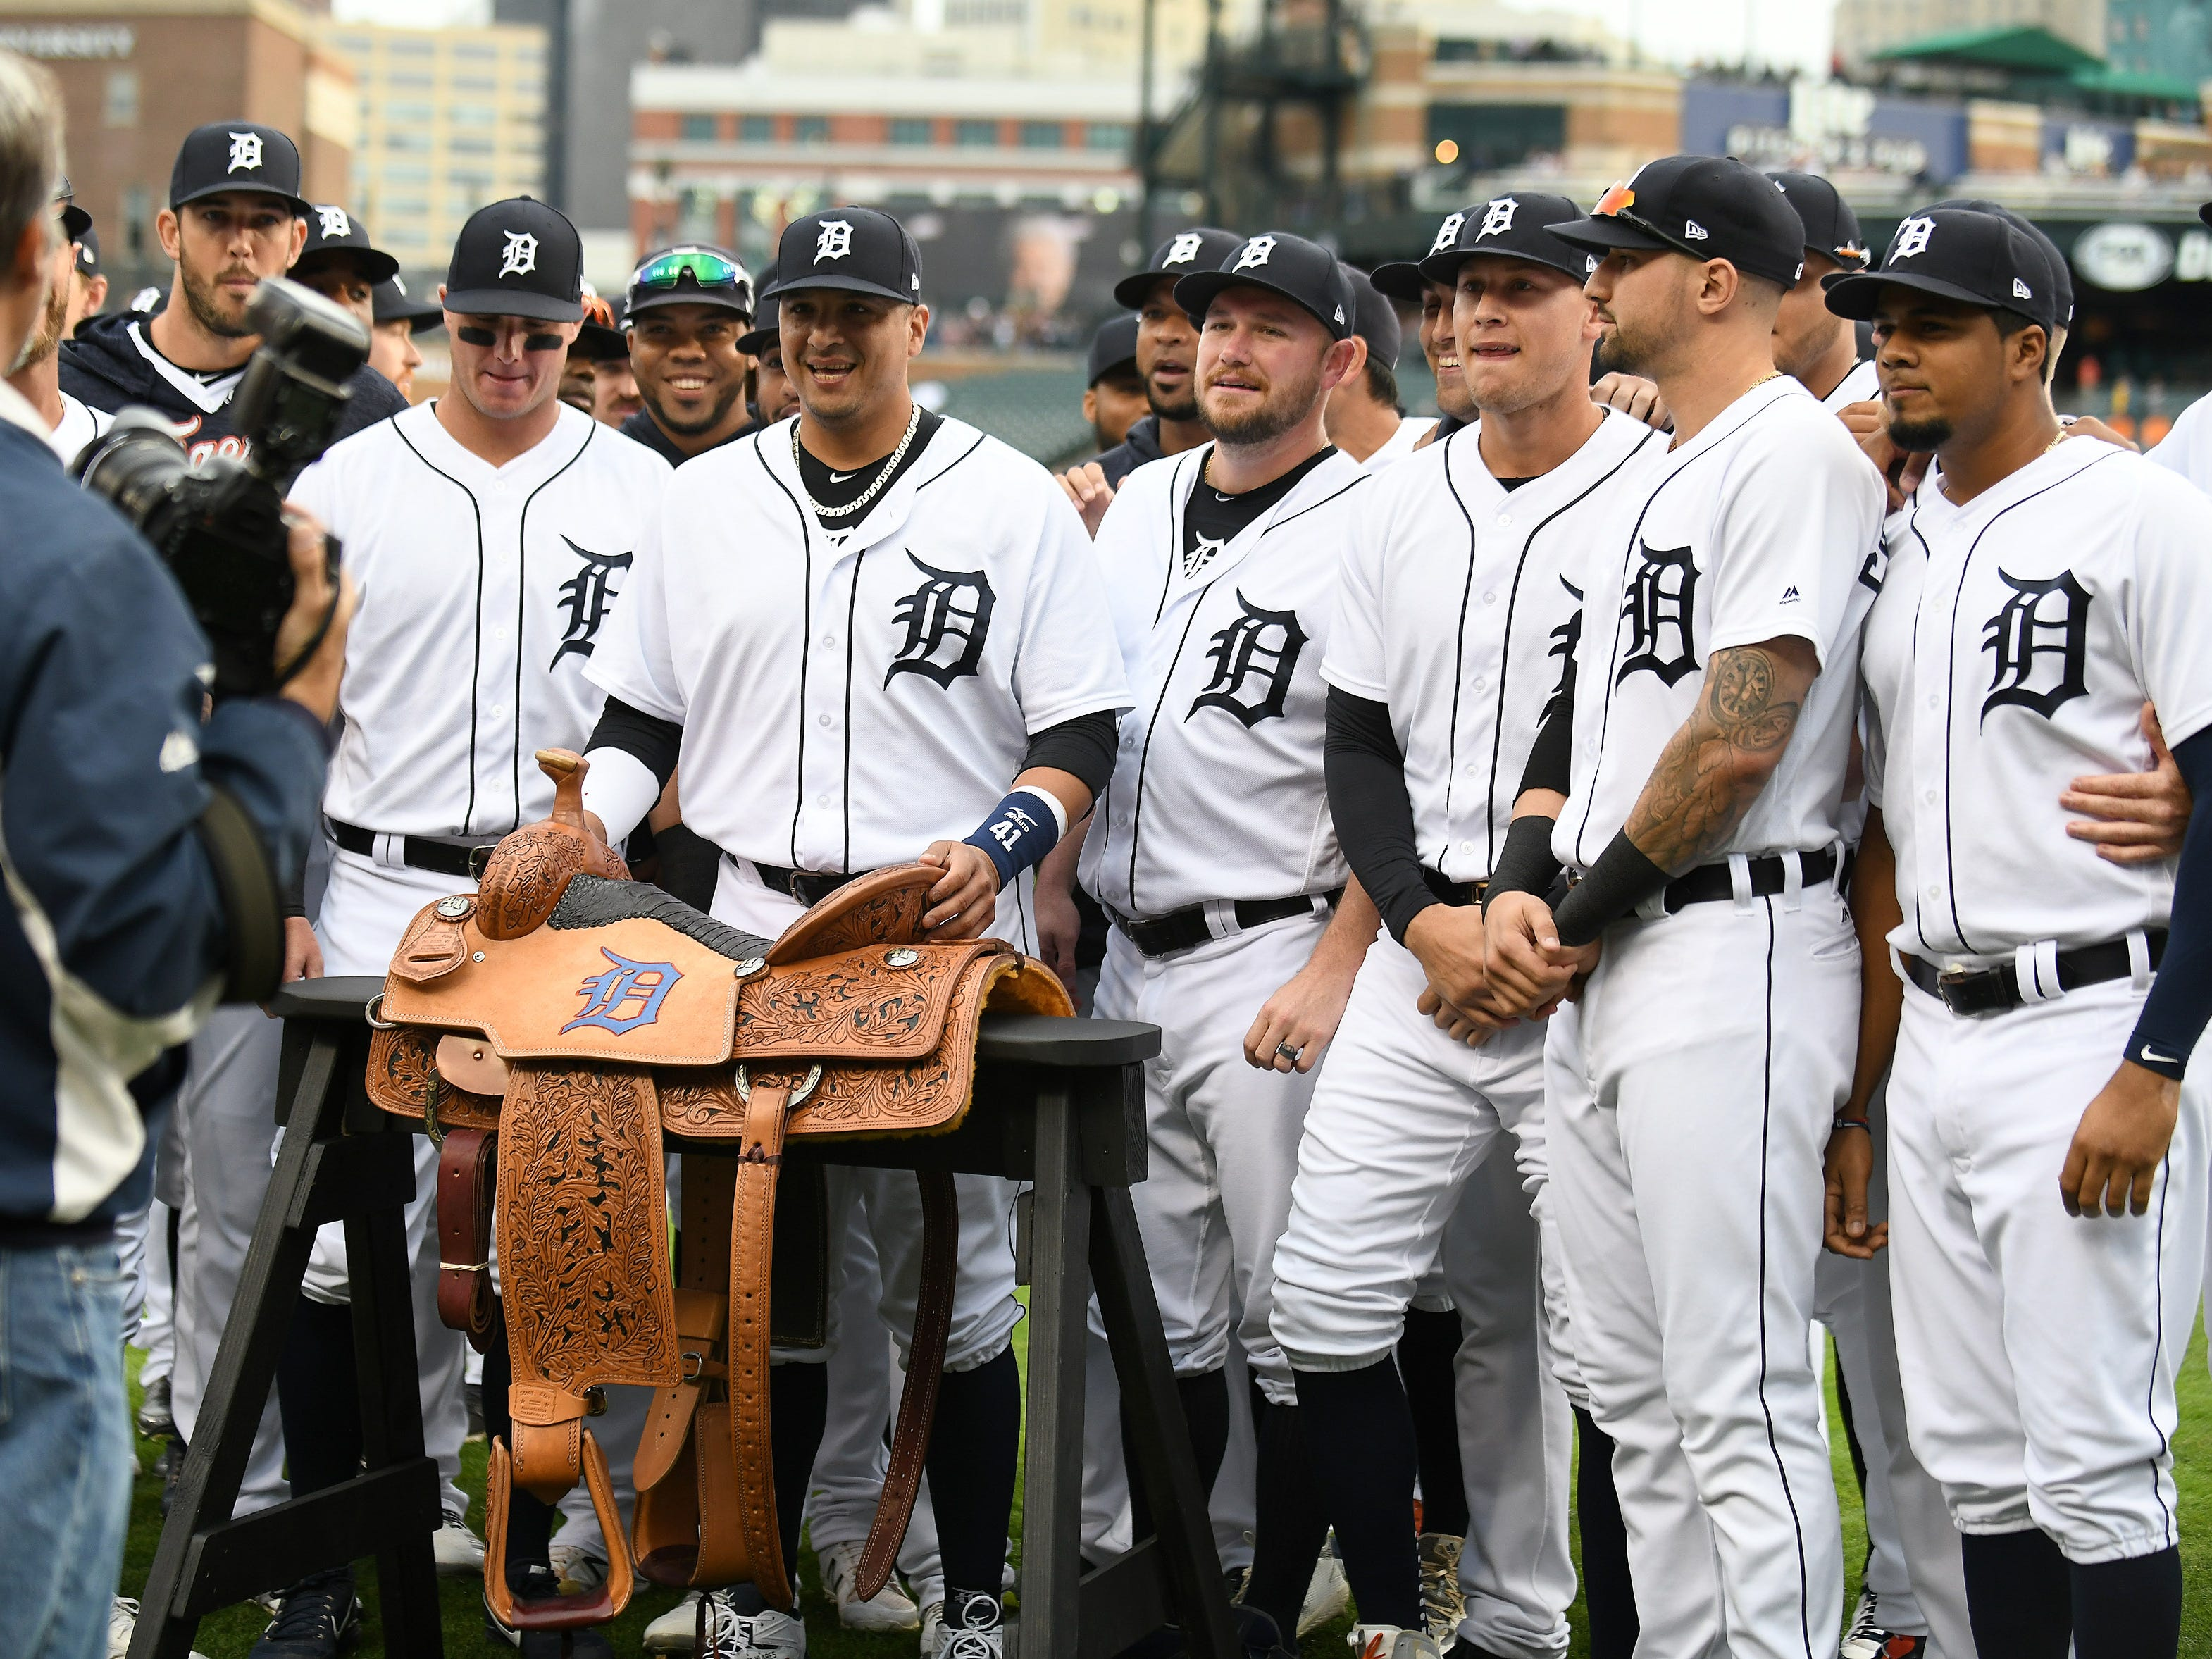 Teammates gather around Victor Martinez and his new saddle at the end of the special tribute ceremony.